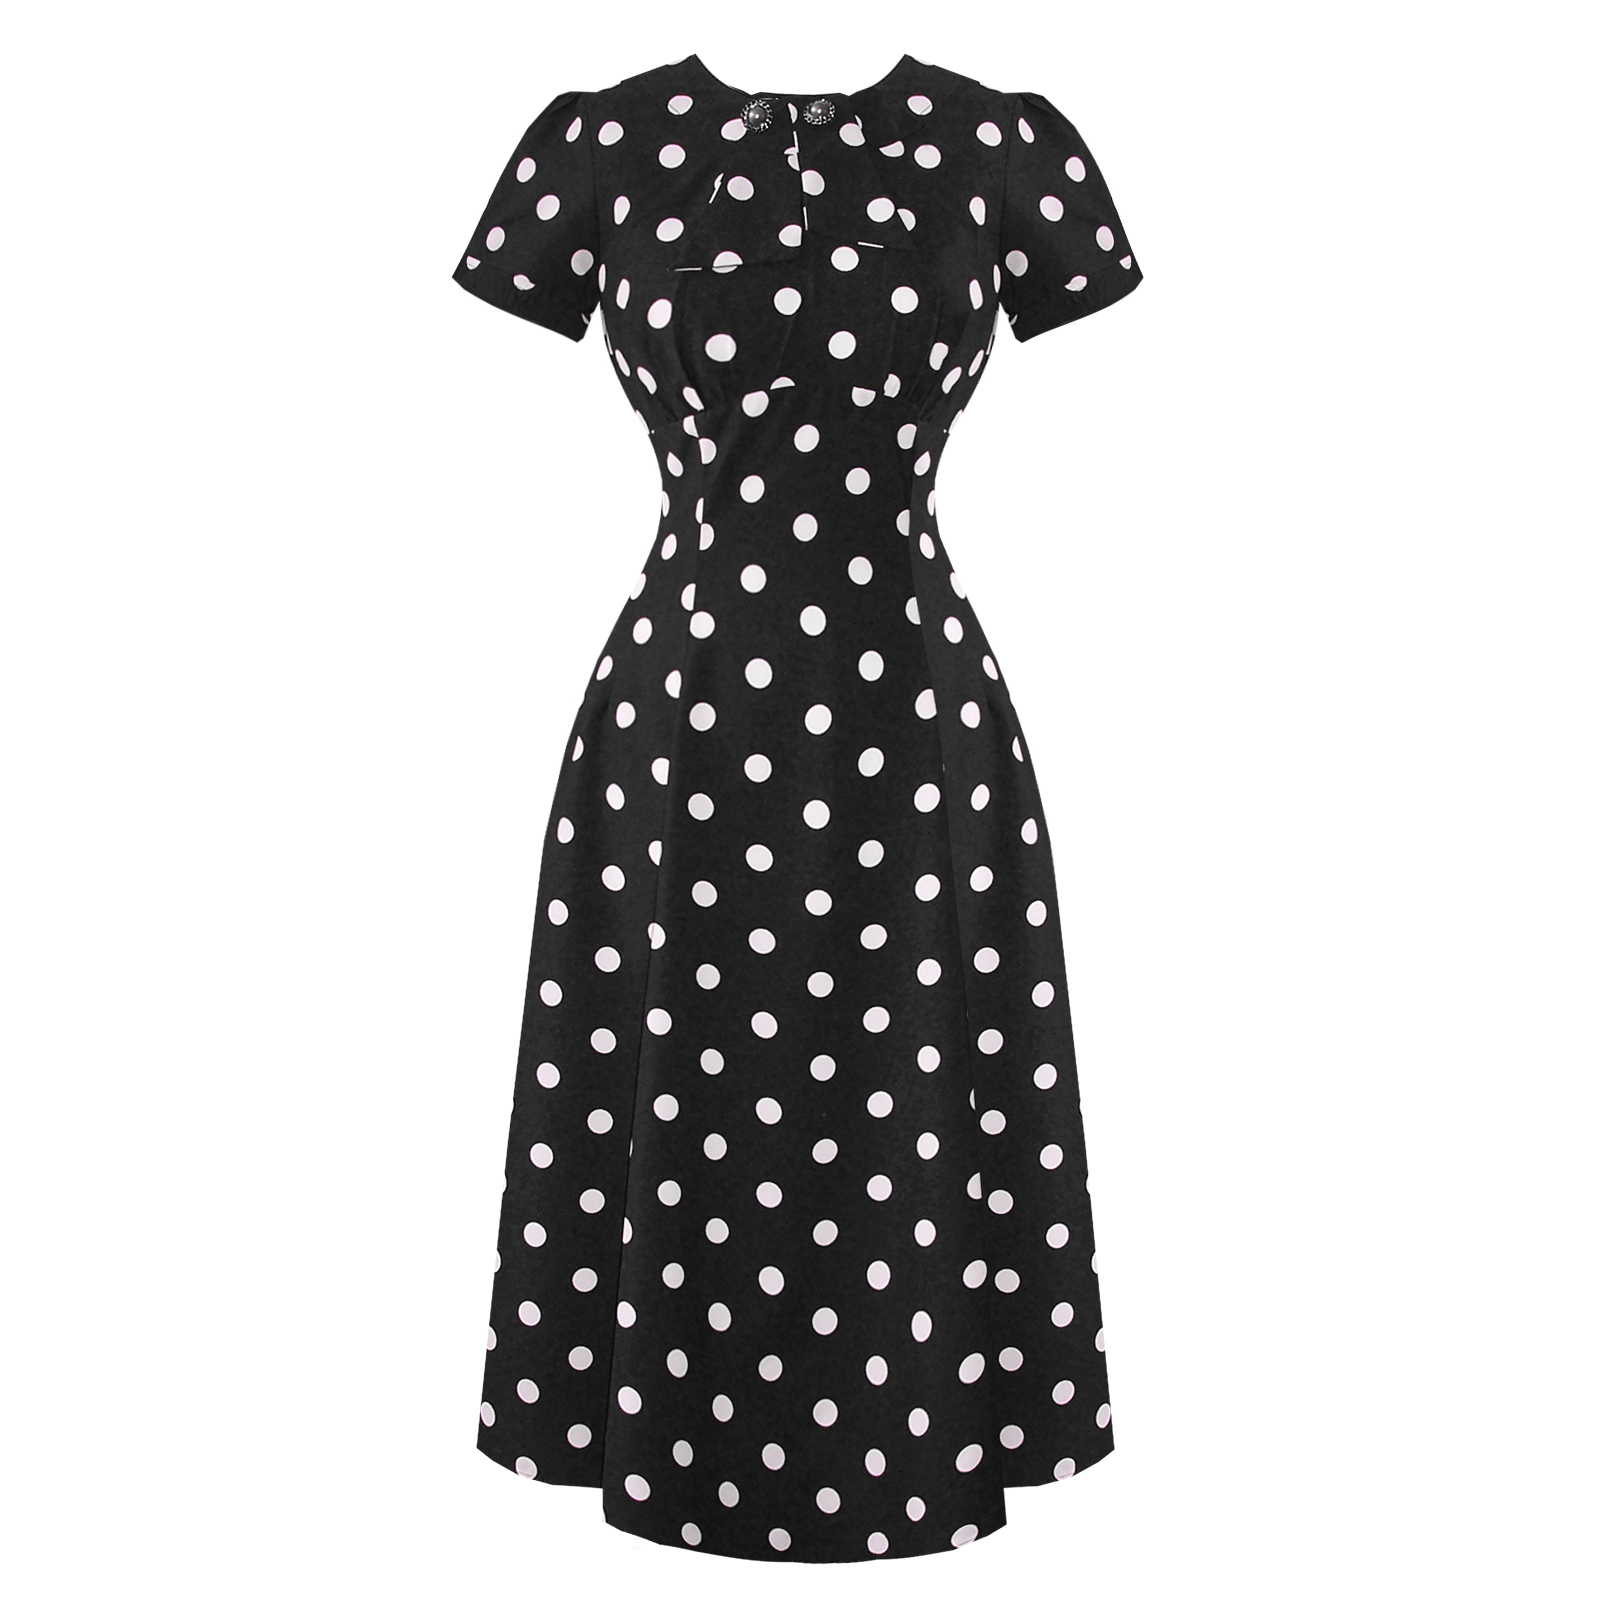 1940s dresses hell bunny madden 1940s dress rqkntyj